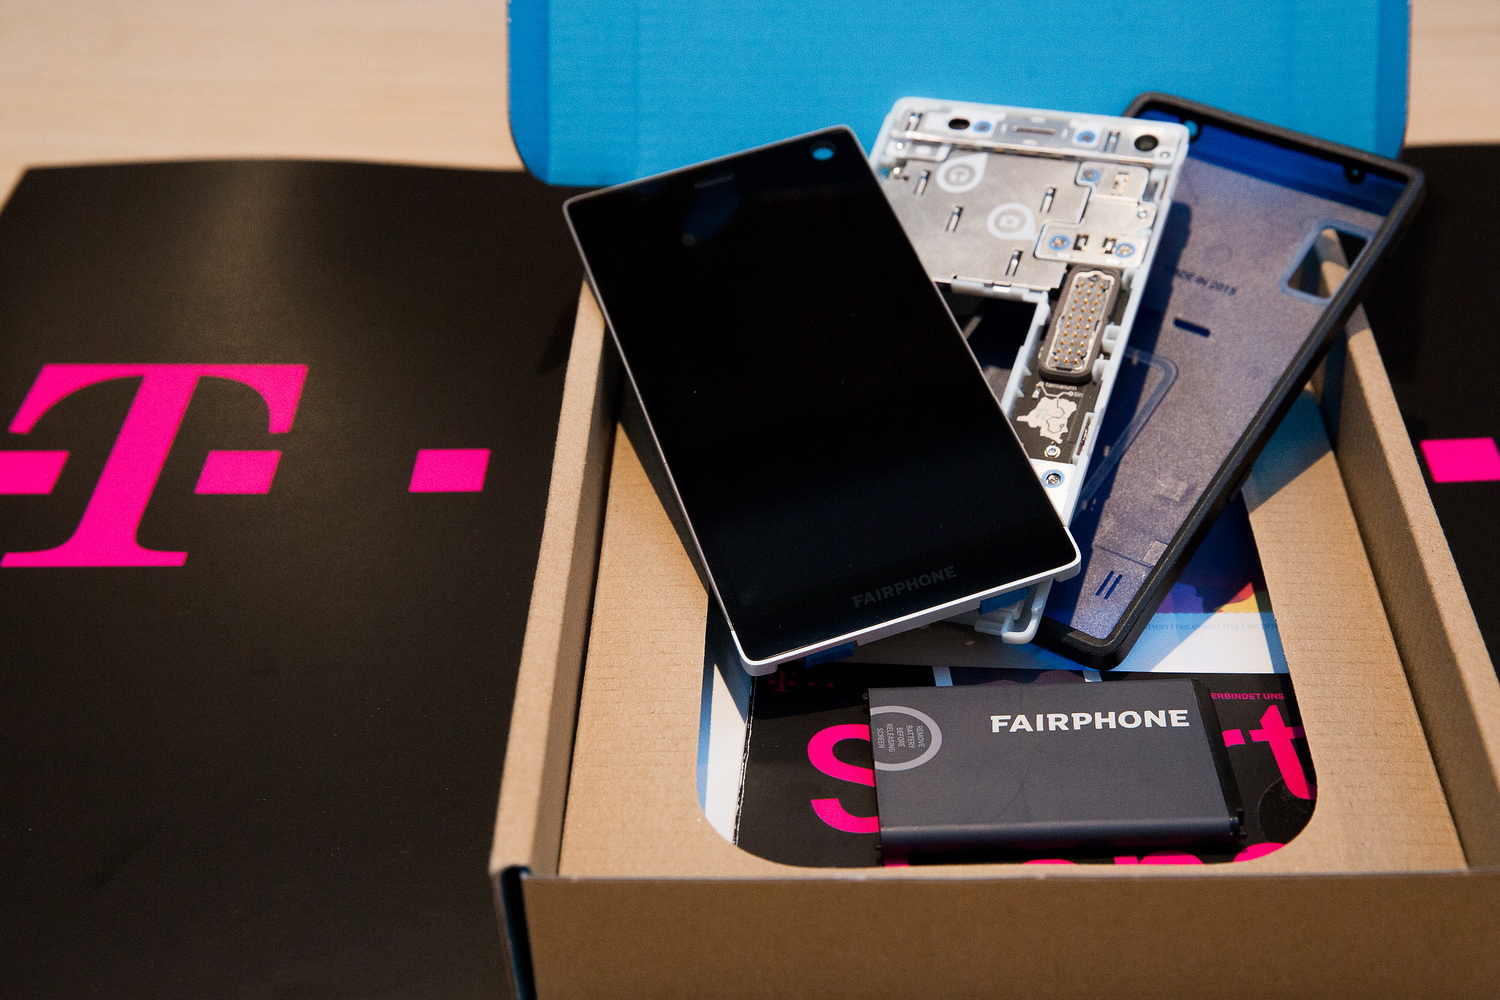 fairphone 2 ab 24 m rz 2016 bei t mobile sterreich. Black Bedroom Furniture Sets. Home Design Ideas